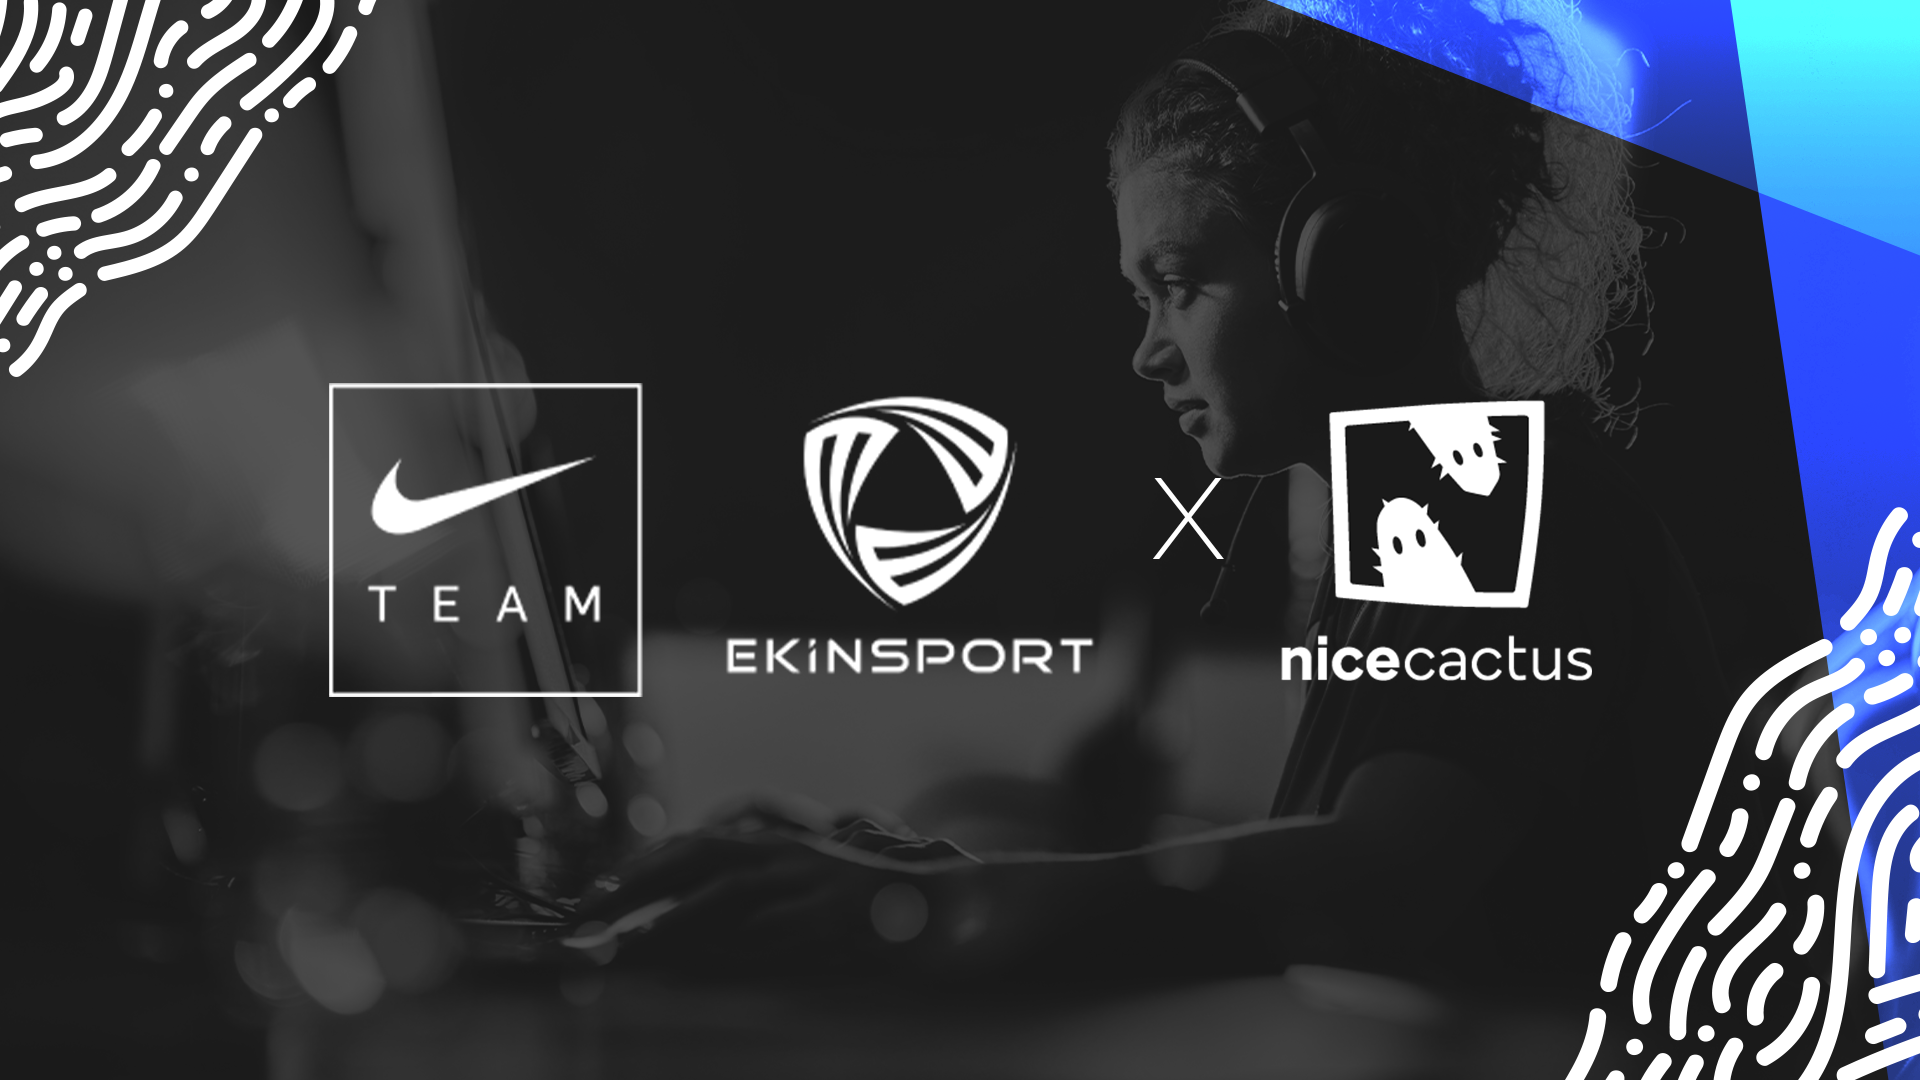 Nicecactus partners with French Nike licensee Ekinsport thumbnail